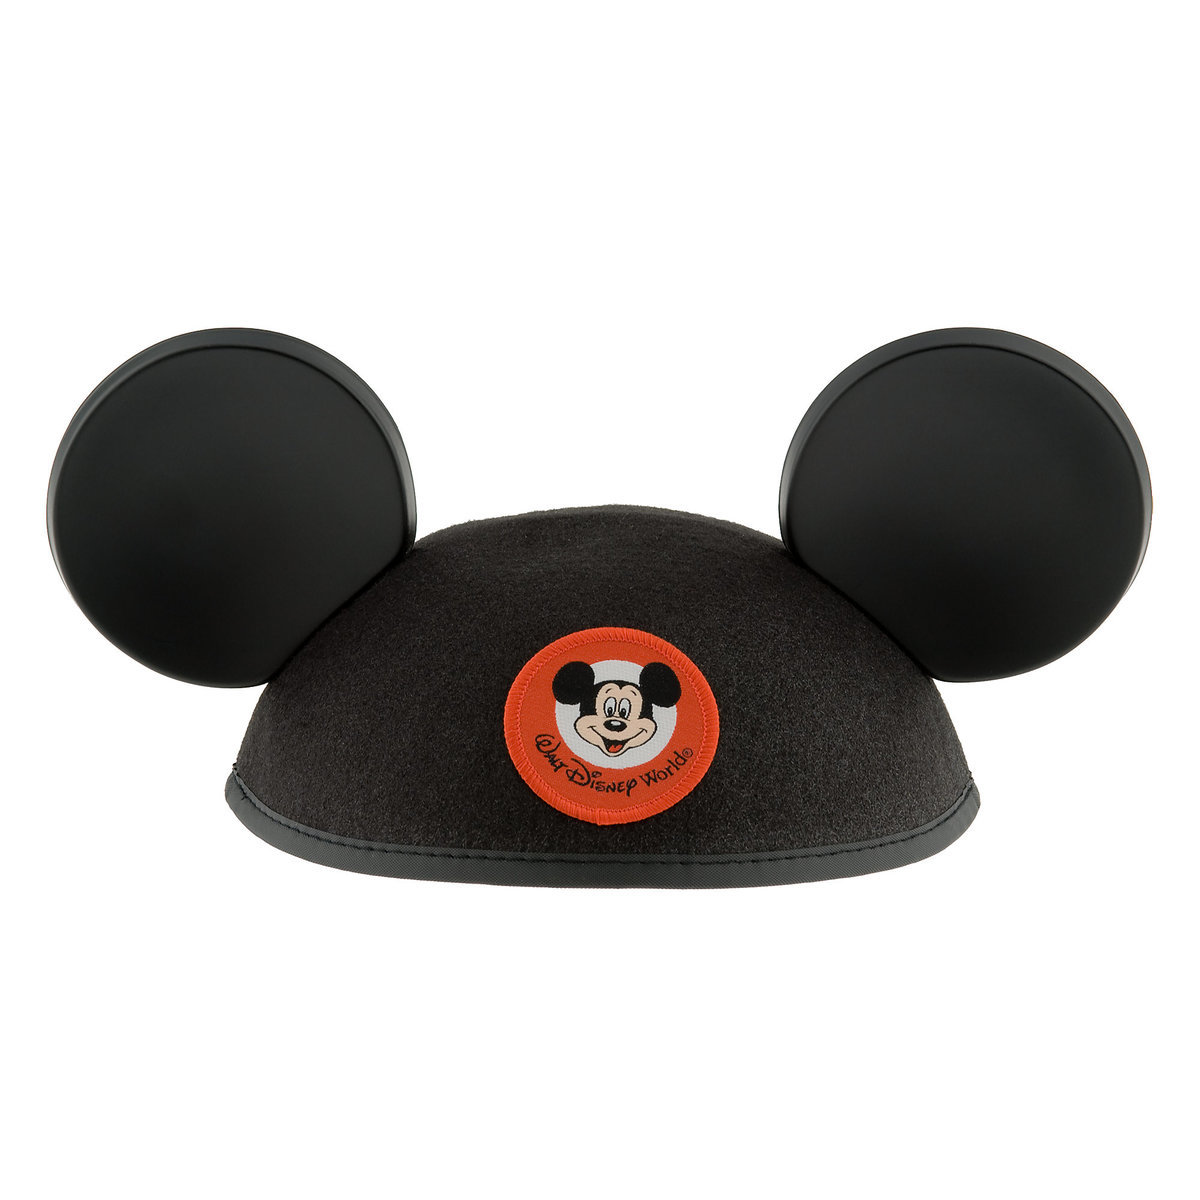 c20e034dcbc51 Product Image of Mickey Mouse Ear Hat for Baby - Walt Disney World -  Personalizable